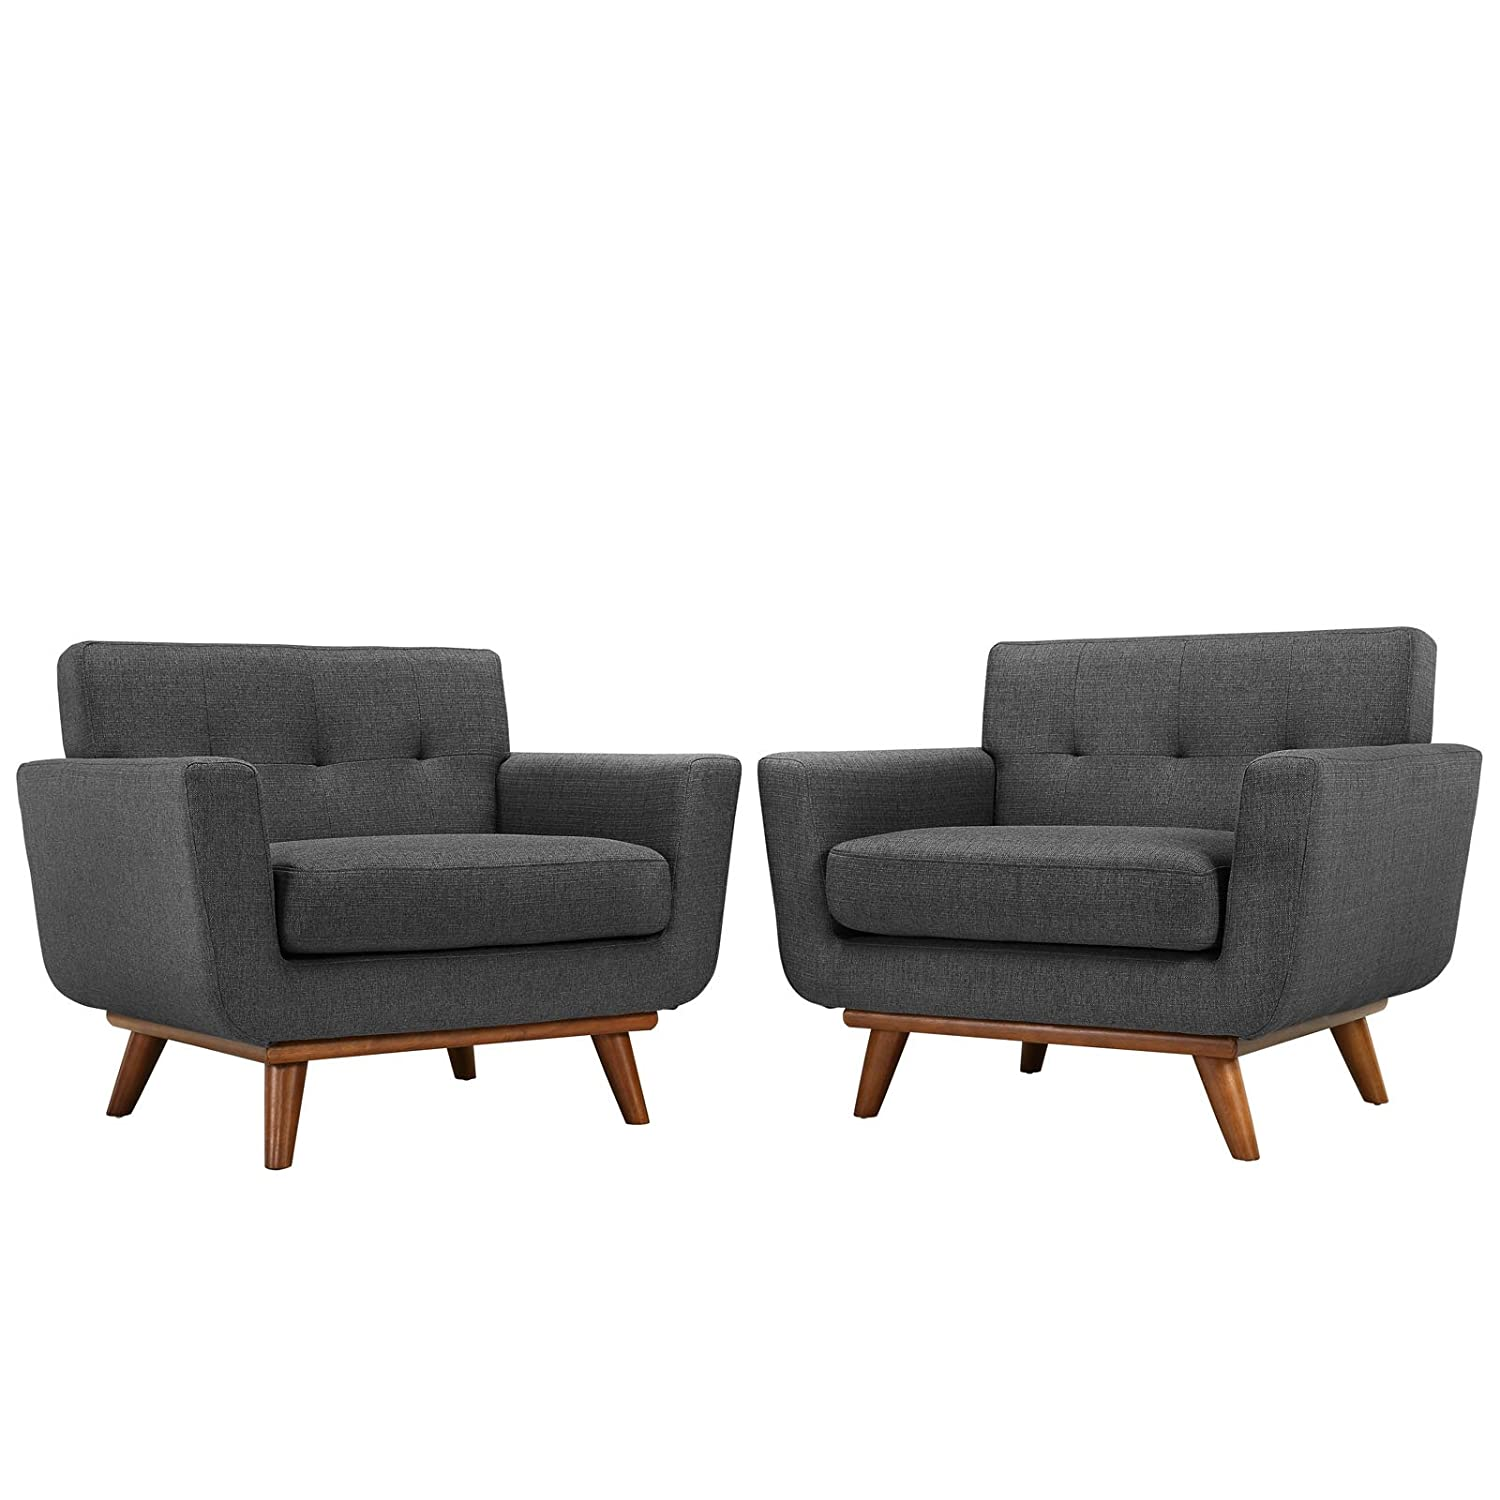 Modway Engage Armchair Wood Set of 2 in Gray